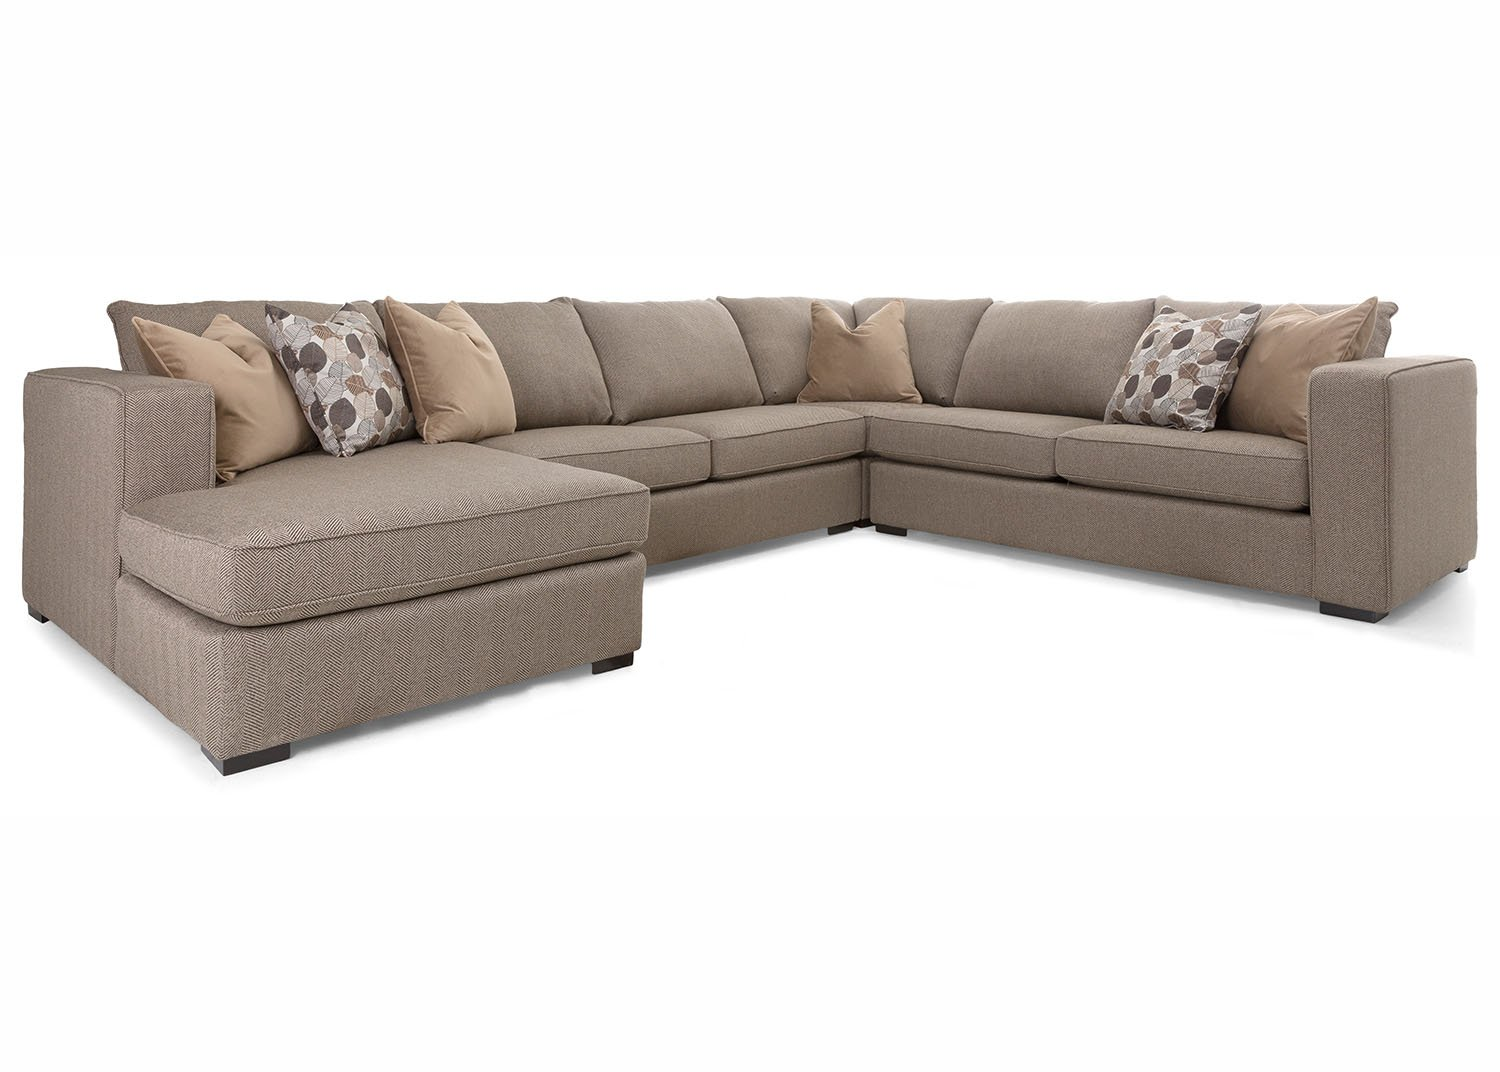 Remy Sectional Sofa | Mobilart Decor High End Furniture